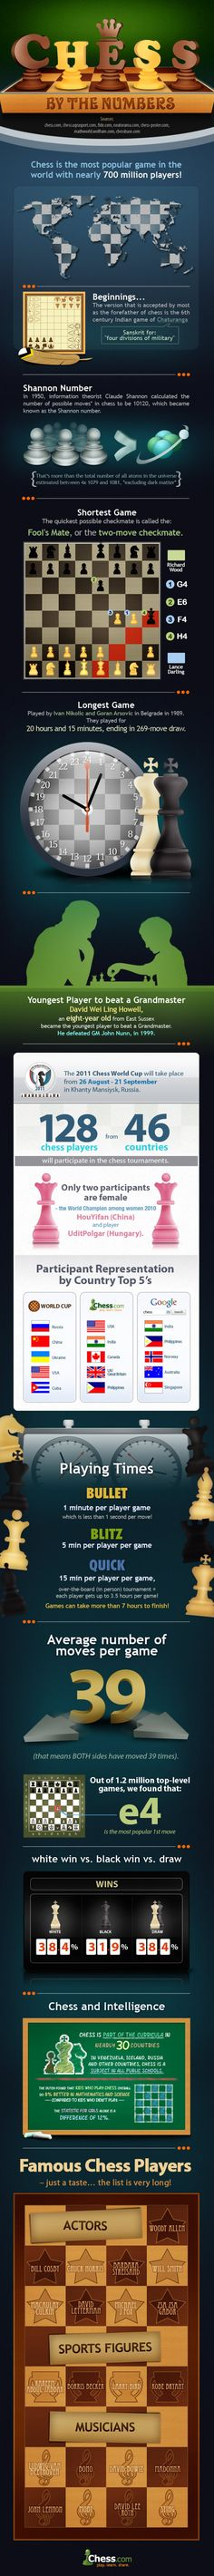 Chess By The Numbers Infographic